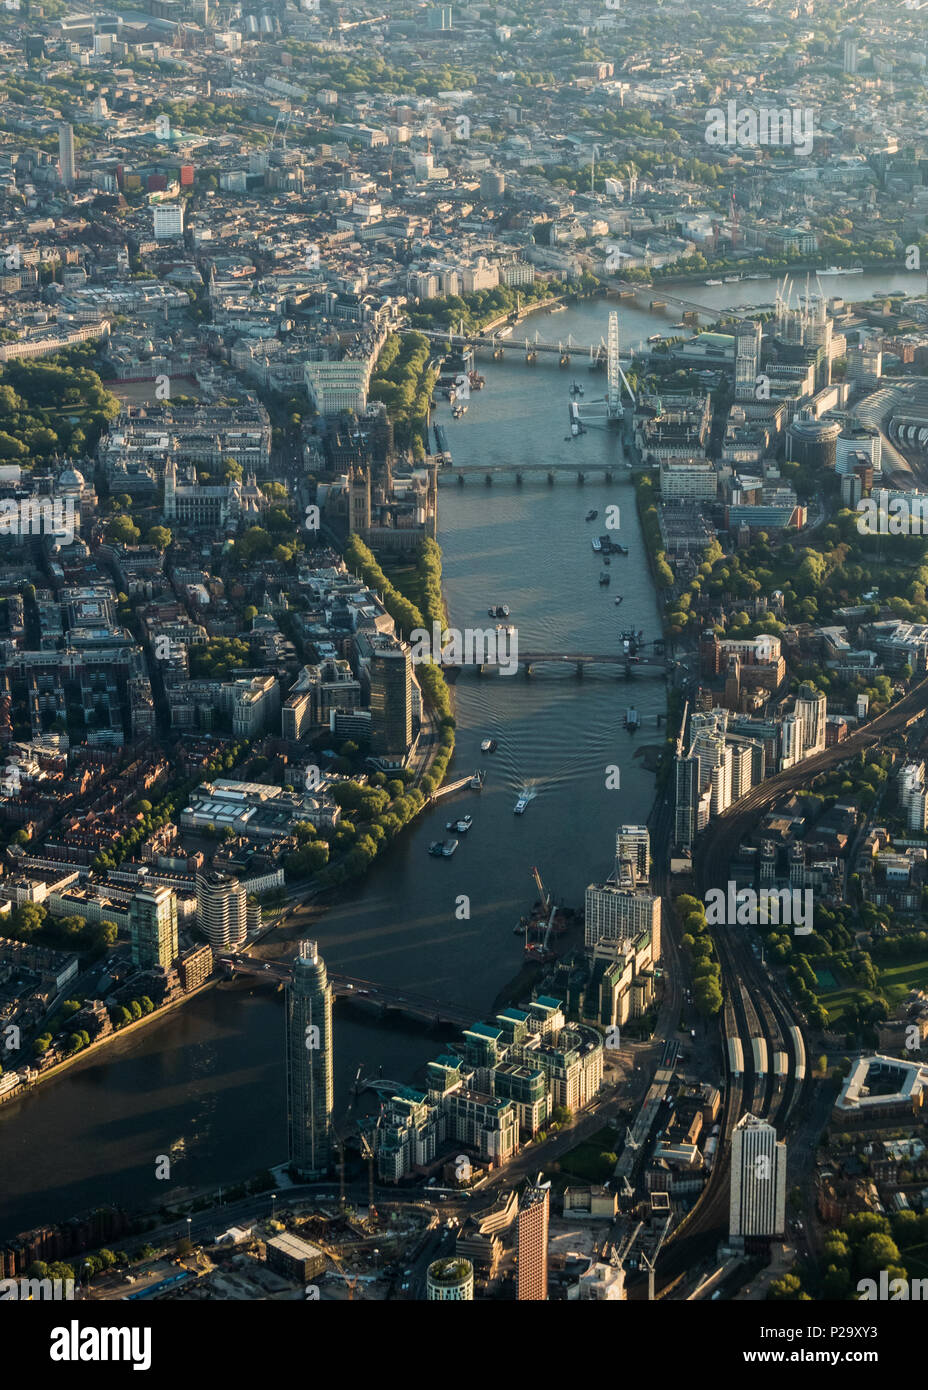 Early morning aerial view of the River Thames through central London from the west. Stock Photo